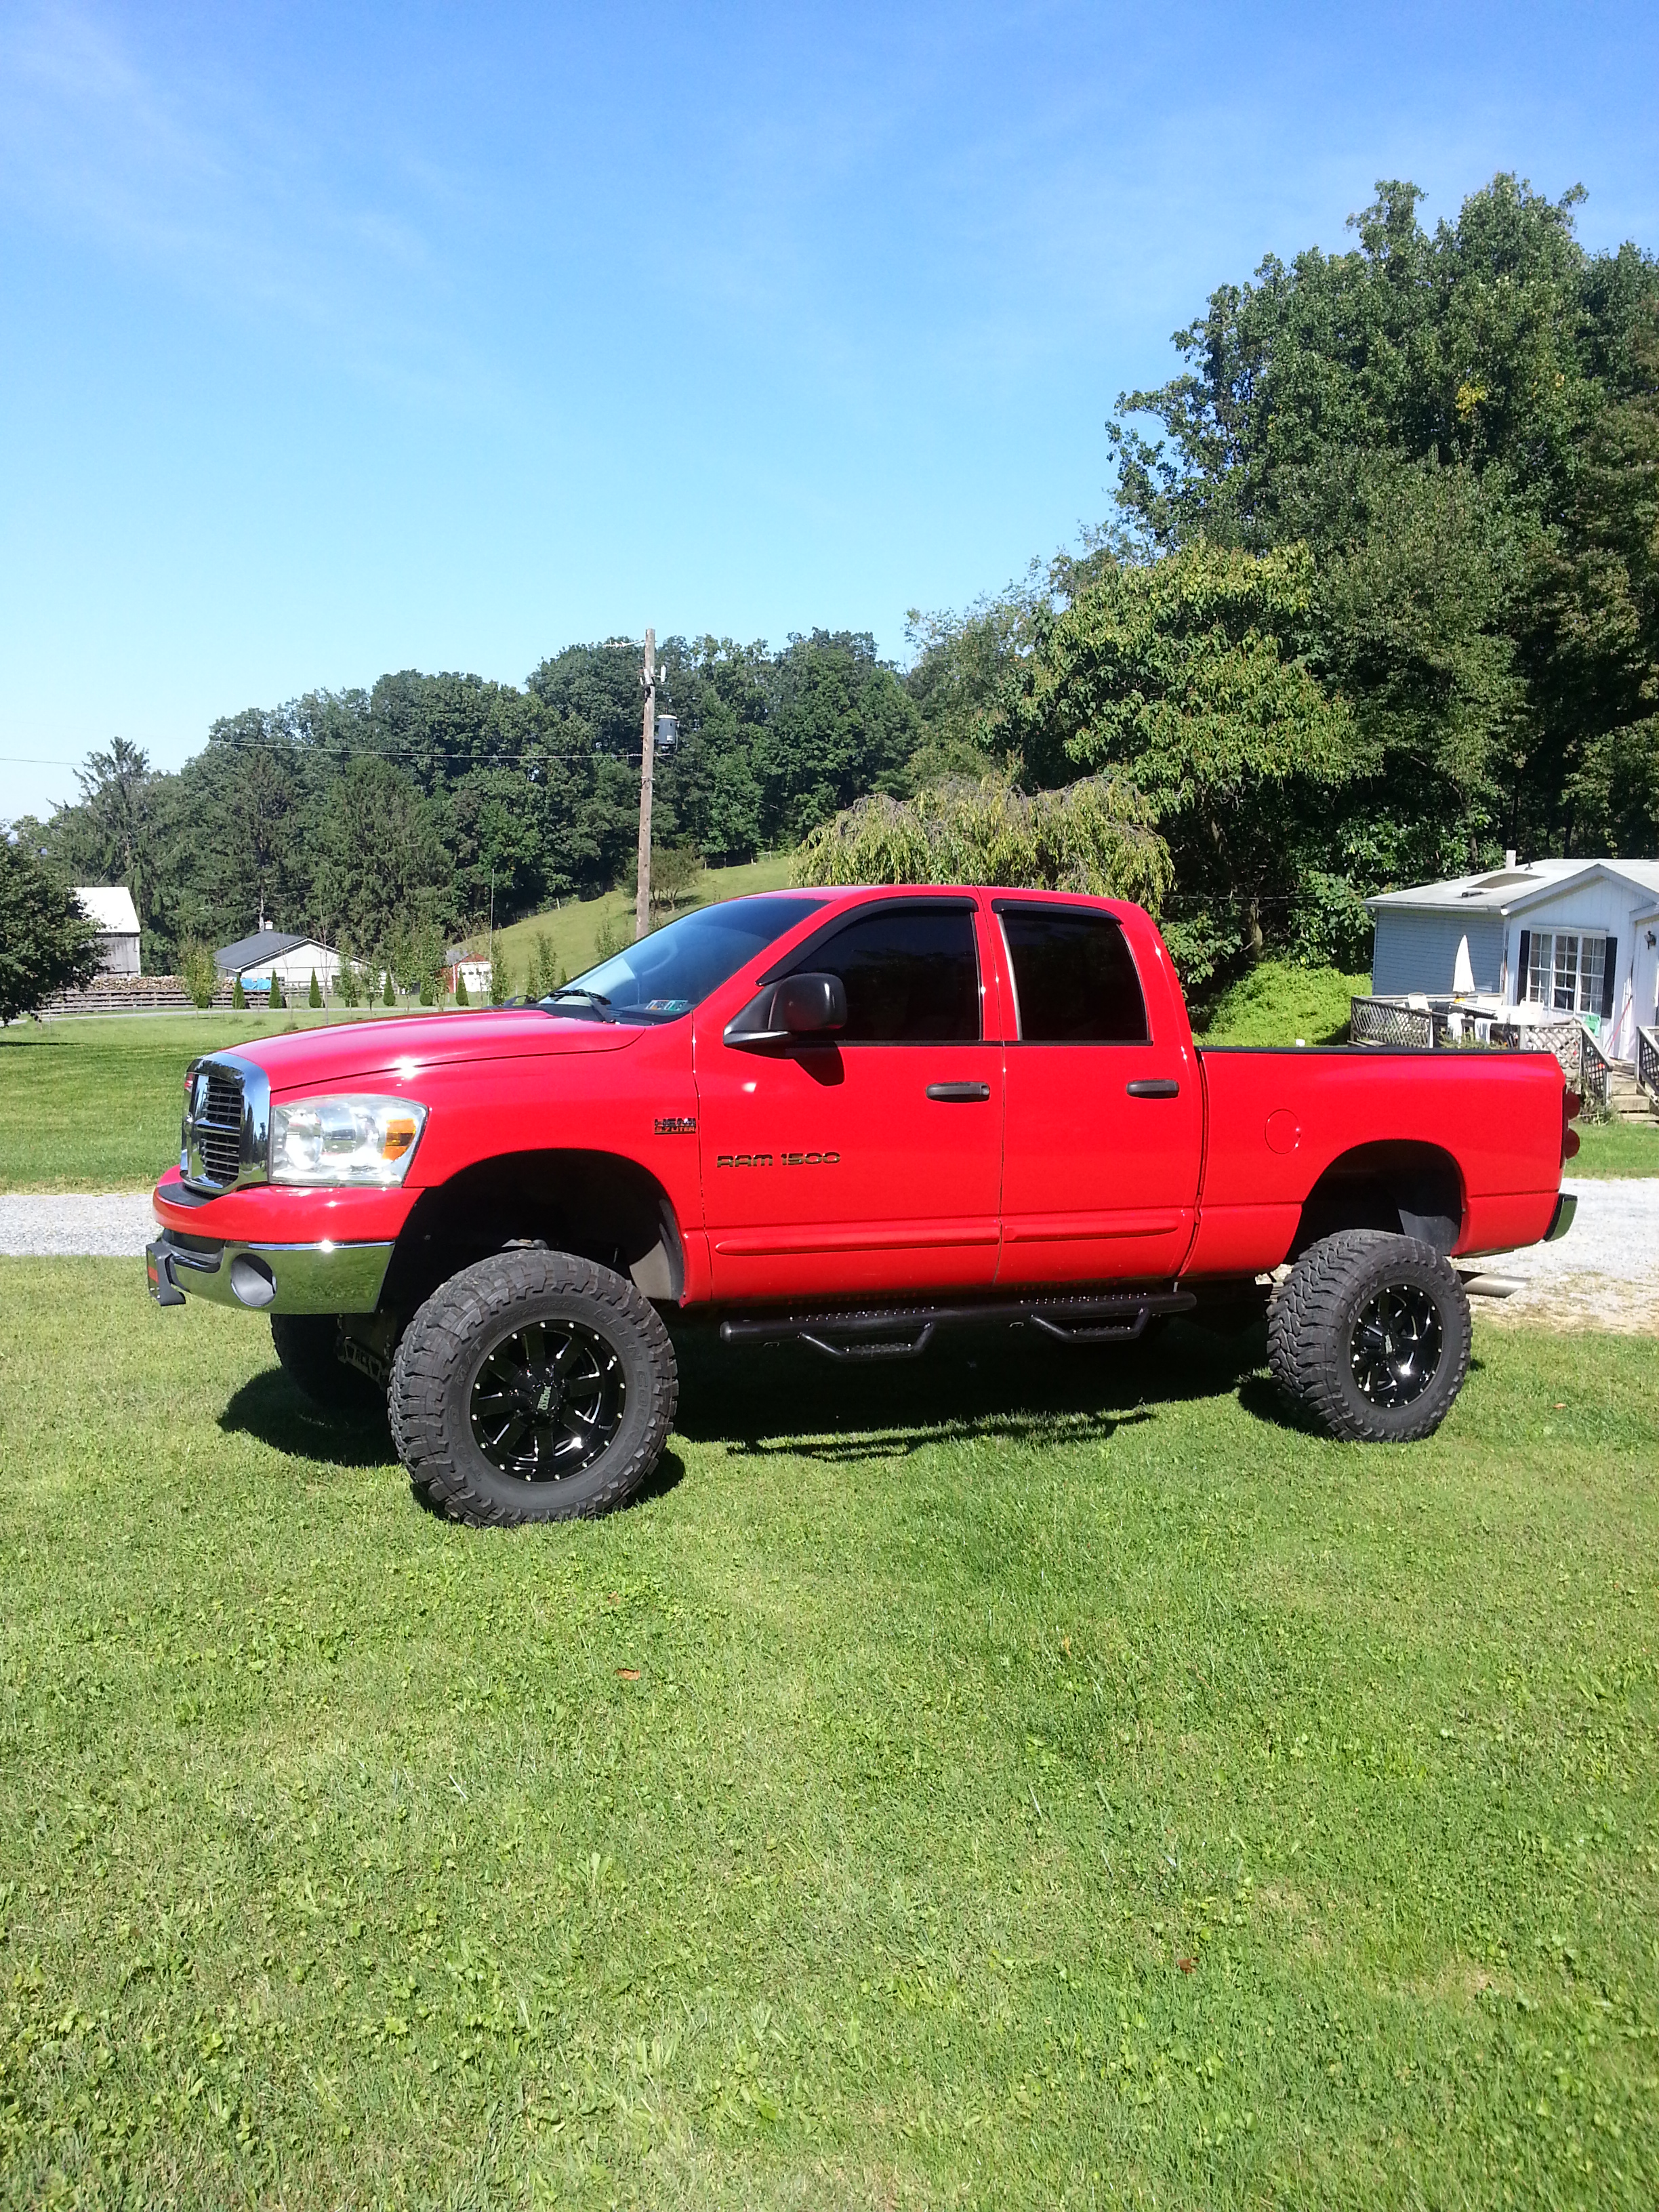 D Think Im Finished New on 2014 Dodge Ram 1500 S